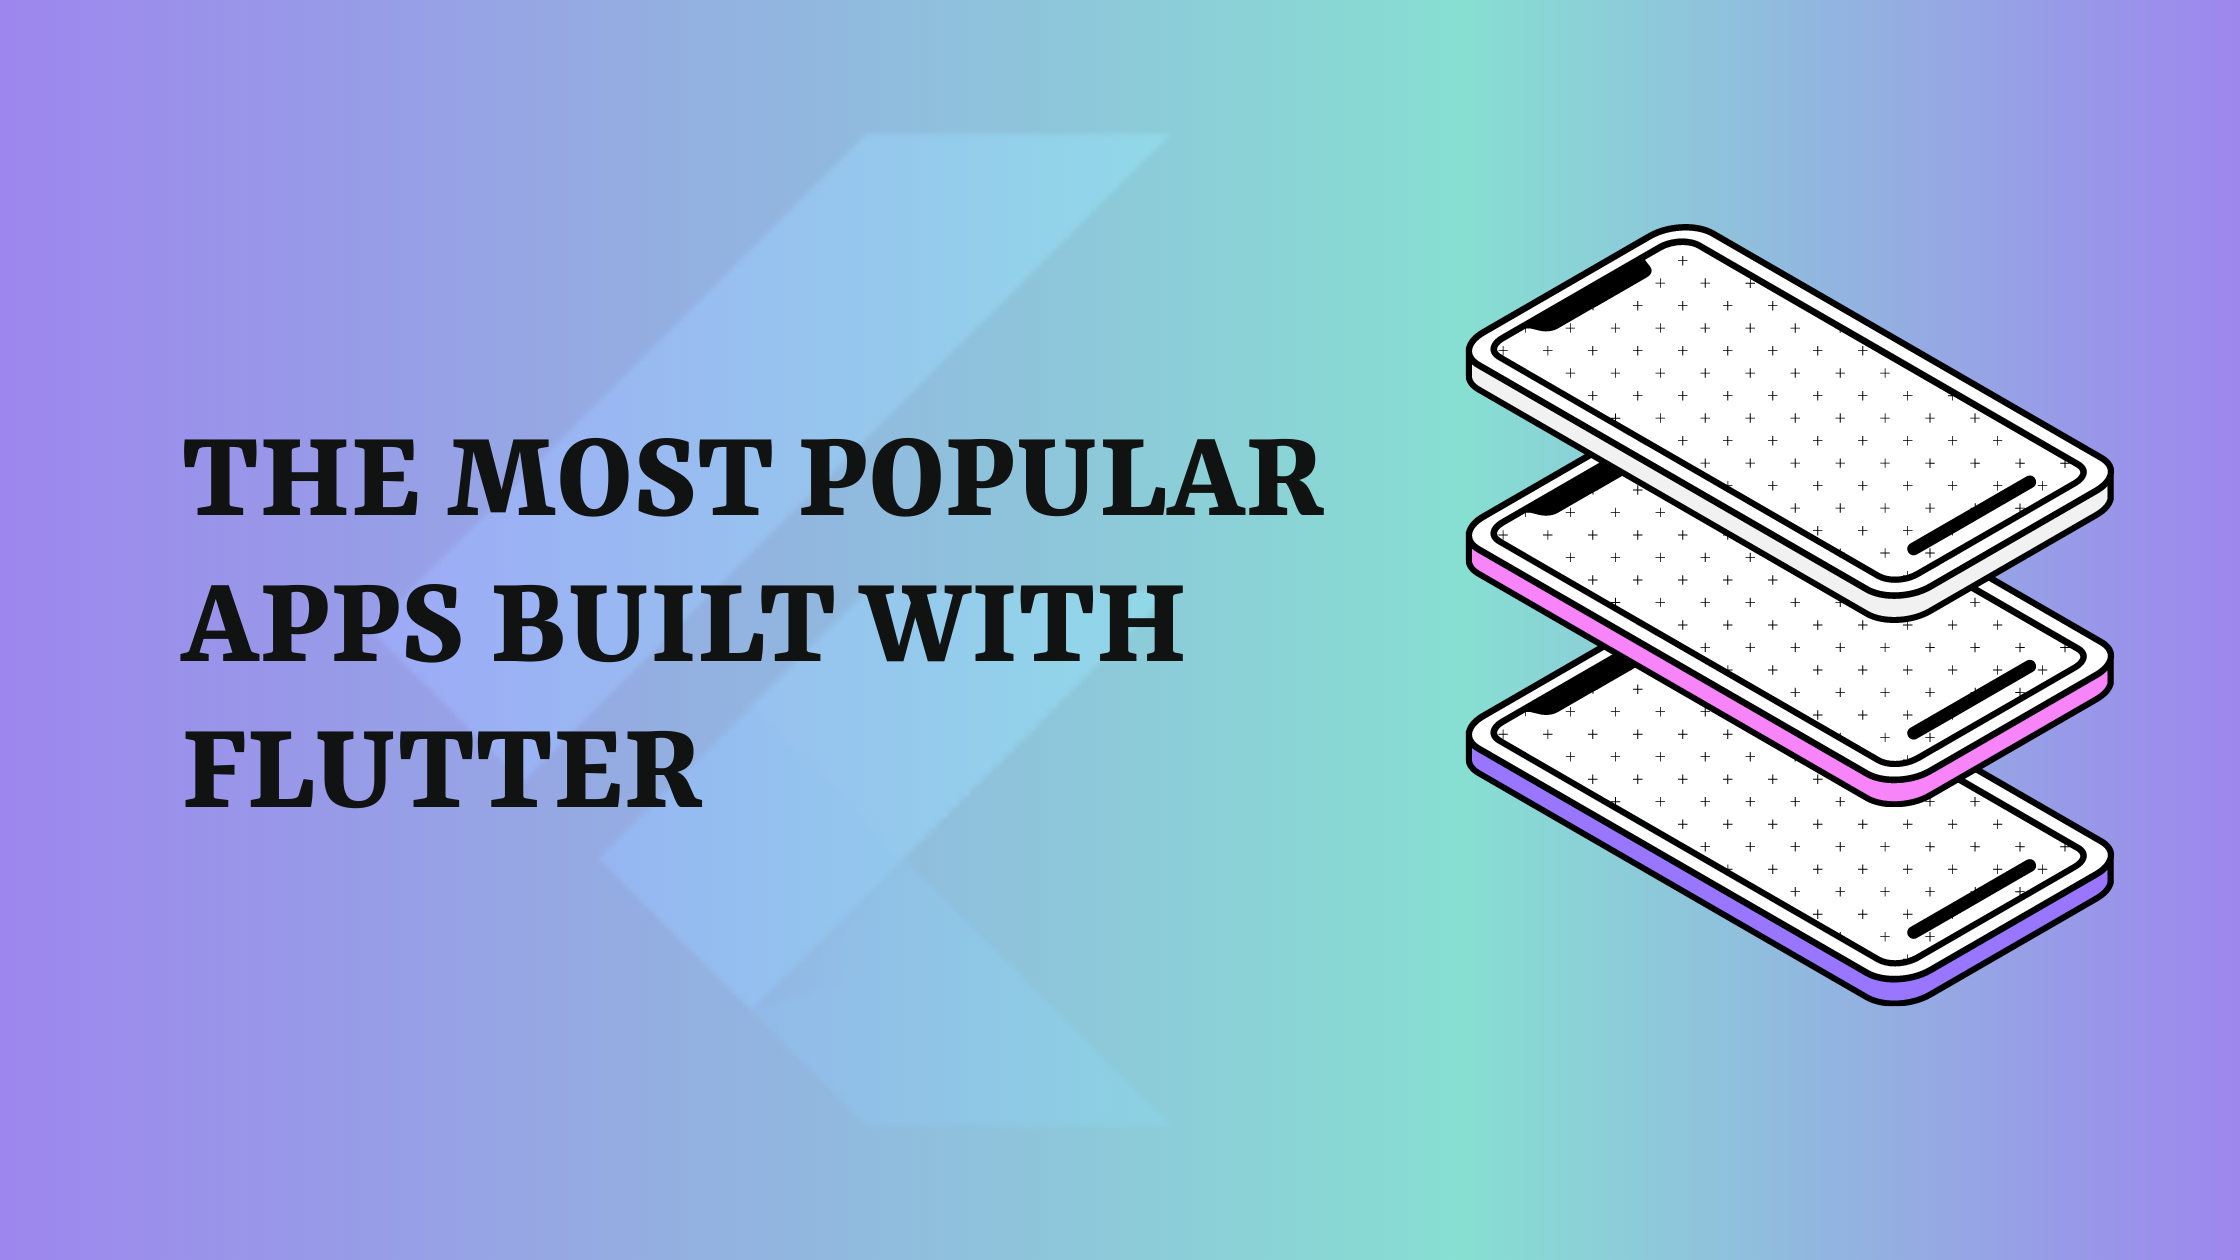 With Flutter Framework, you can develop an app once and cross-compile them for multiple platforms while exploring new features. Out of many apps built with Flutter, some have grown to become more popular than others, and below is a closer look at these unique applications.